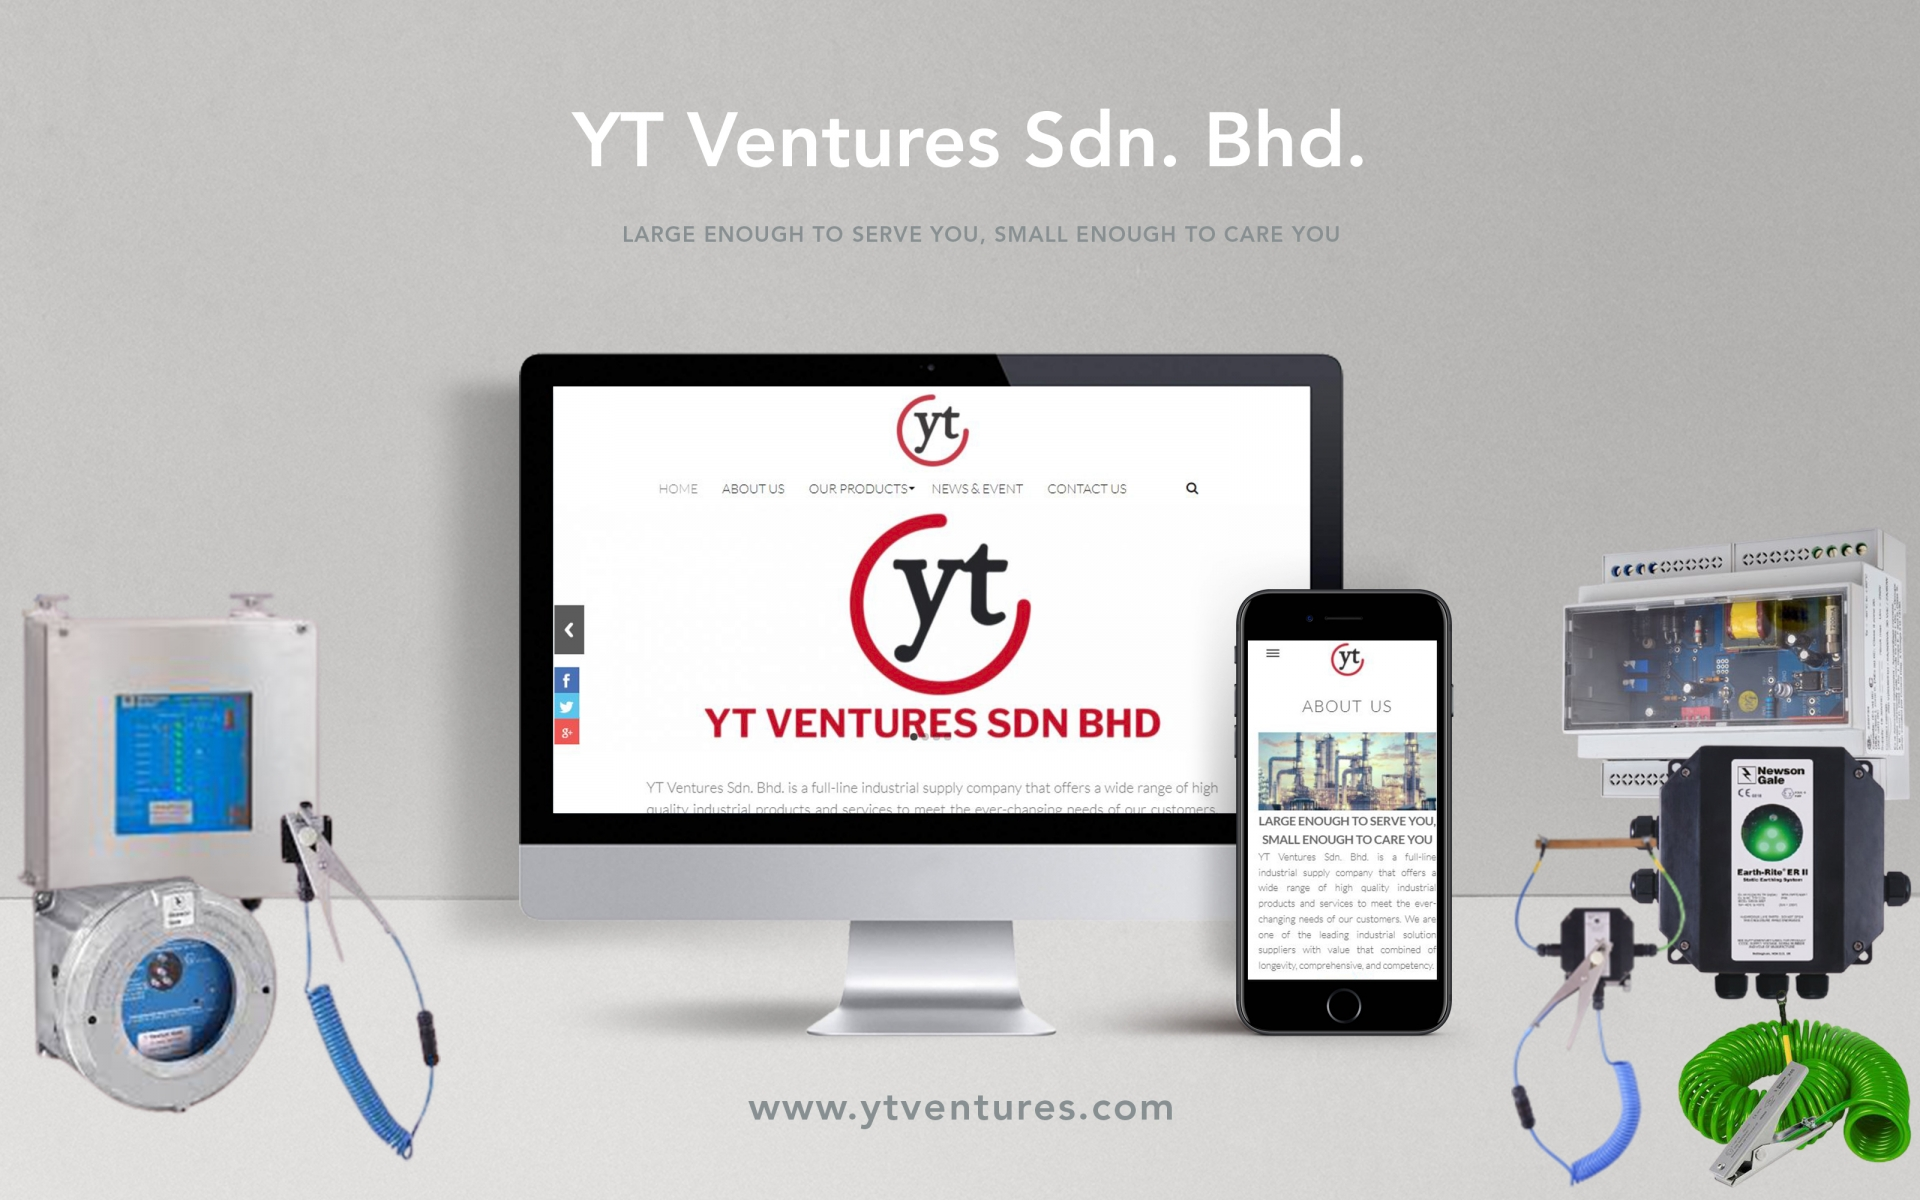 "<a href=""http://welcome.ytventures.com"" target=""_blank"">Yt Ventures Sdn. Bhd.</a>"